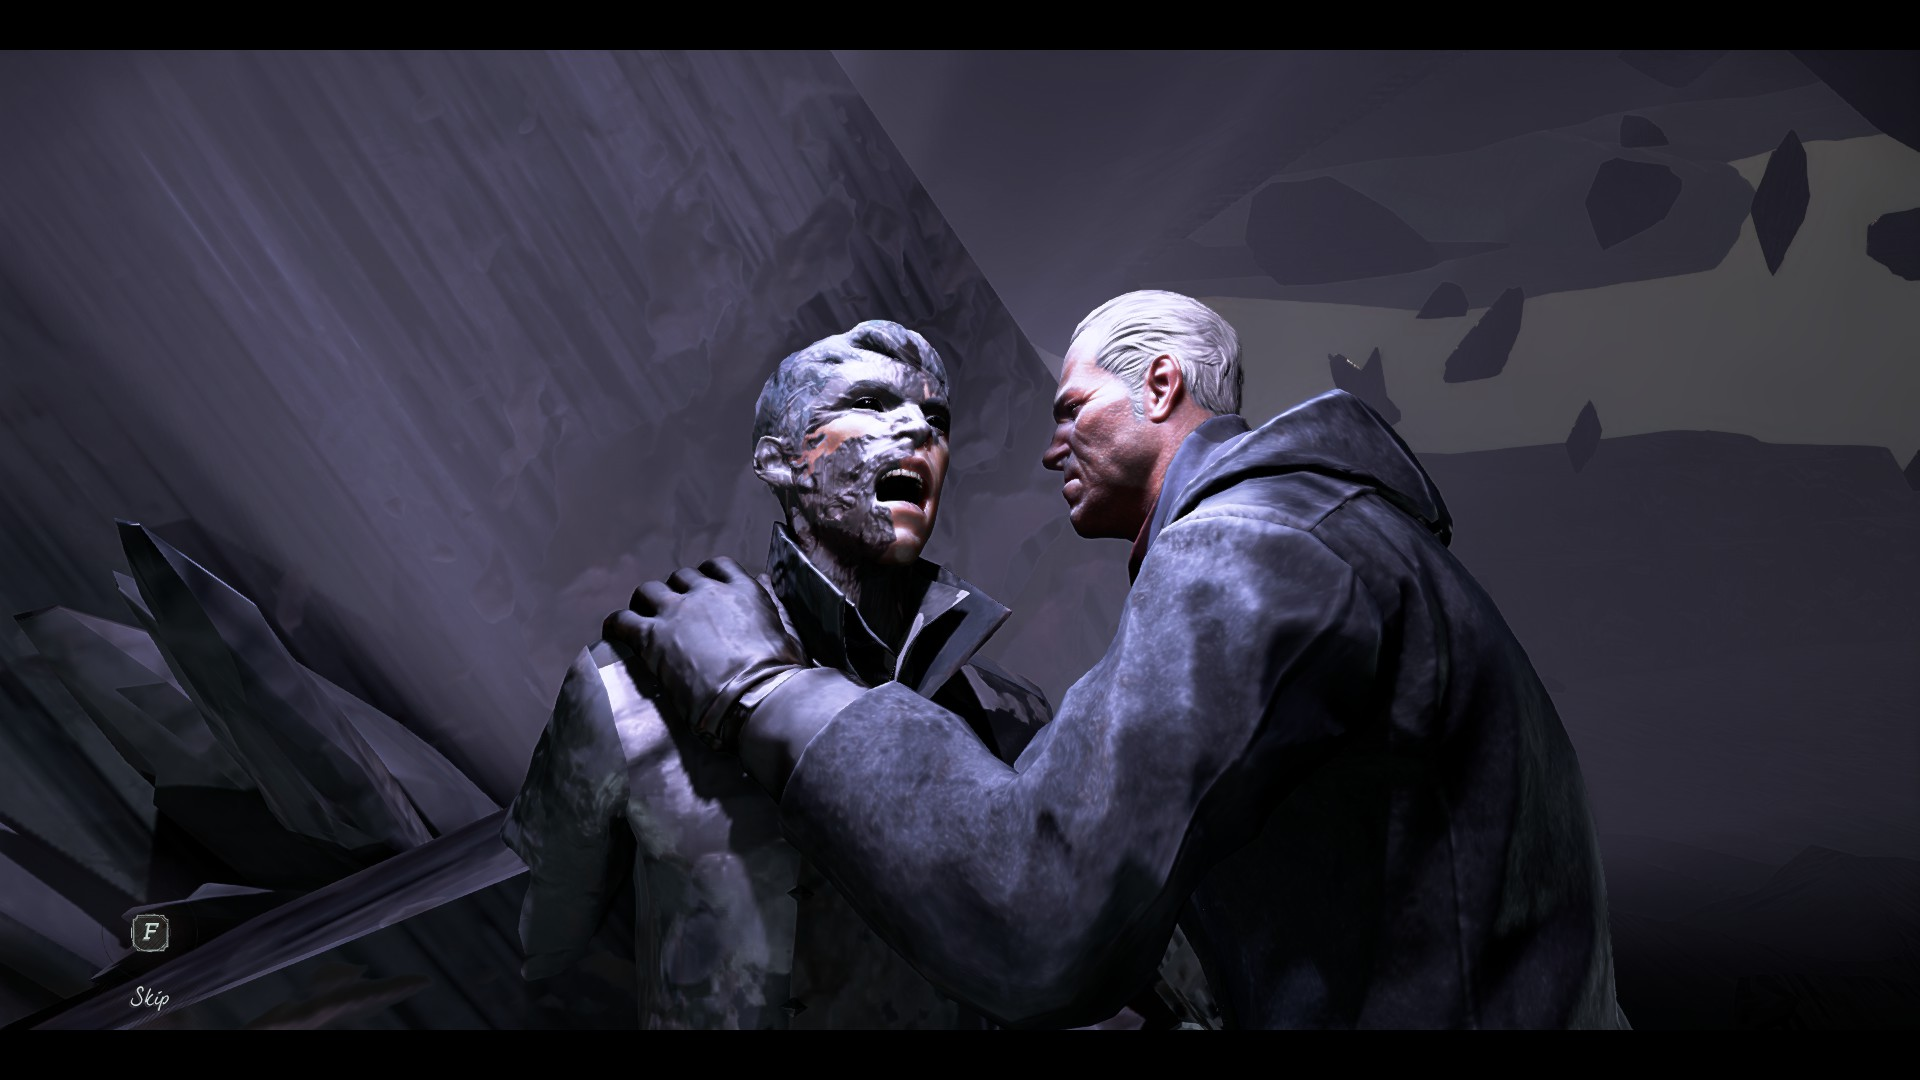 The Refined Geek 2017 October Dishonored Death Of Outsider Reg 2 Ps4 Should Be Last We See This Series In Its Current State It Will A Grand Farewell Being Best